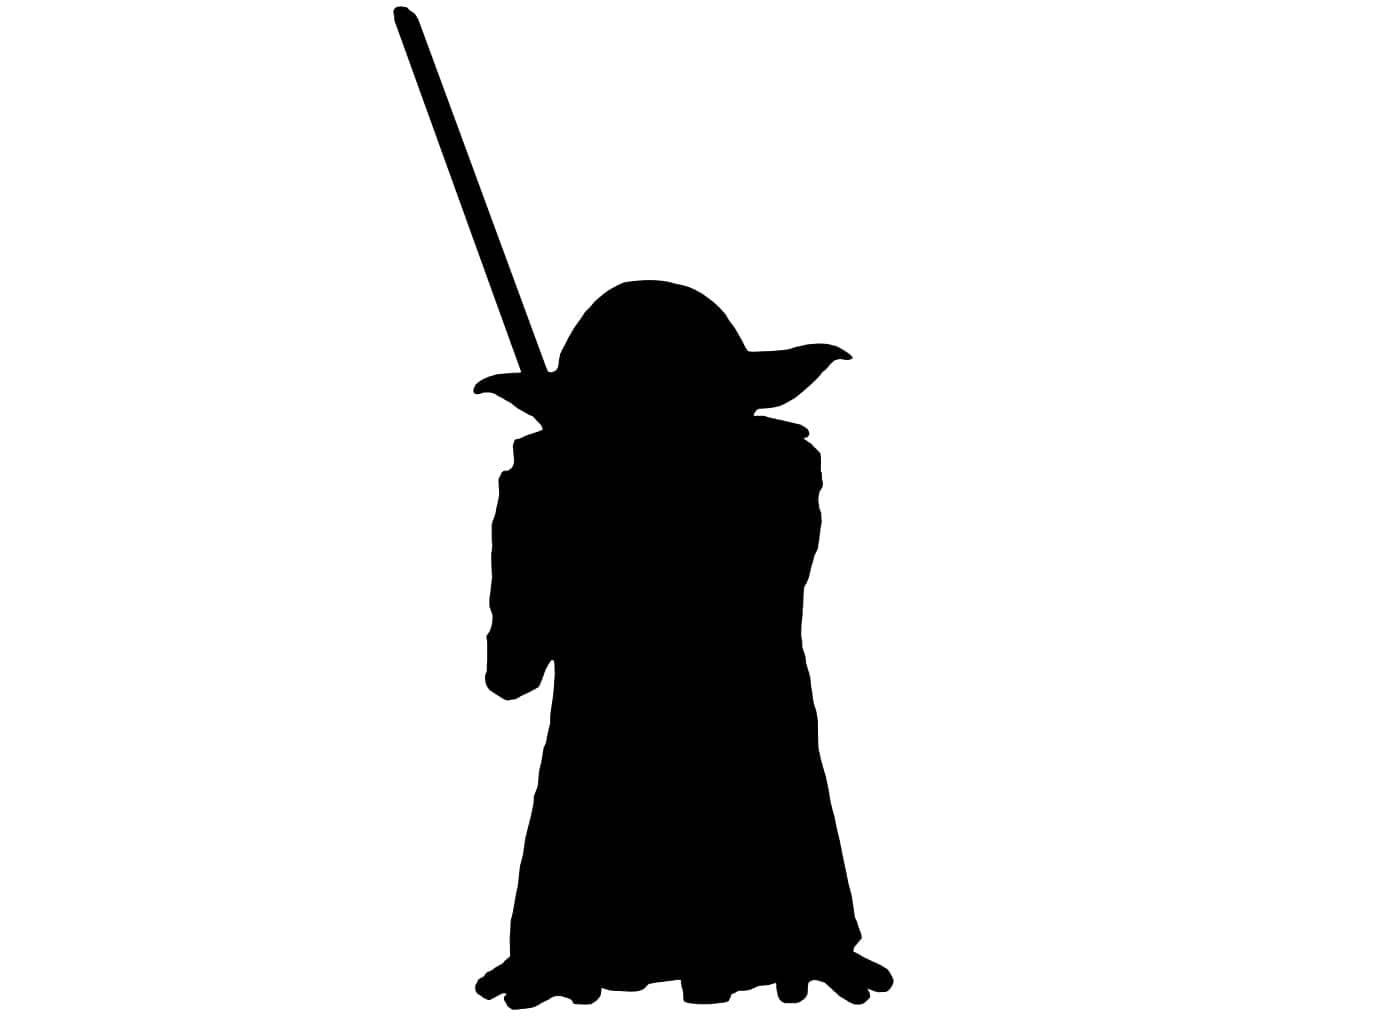 Yoda silhouette clipart free picture stock Star Wars Yoda Silhouette at GetDrawings.com | Free for ... picture stock